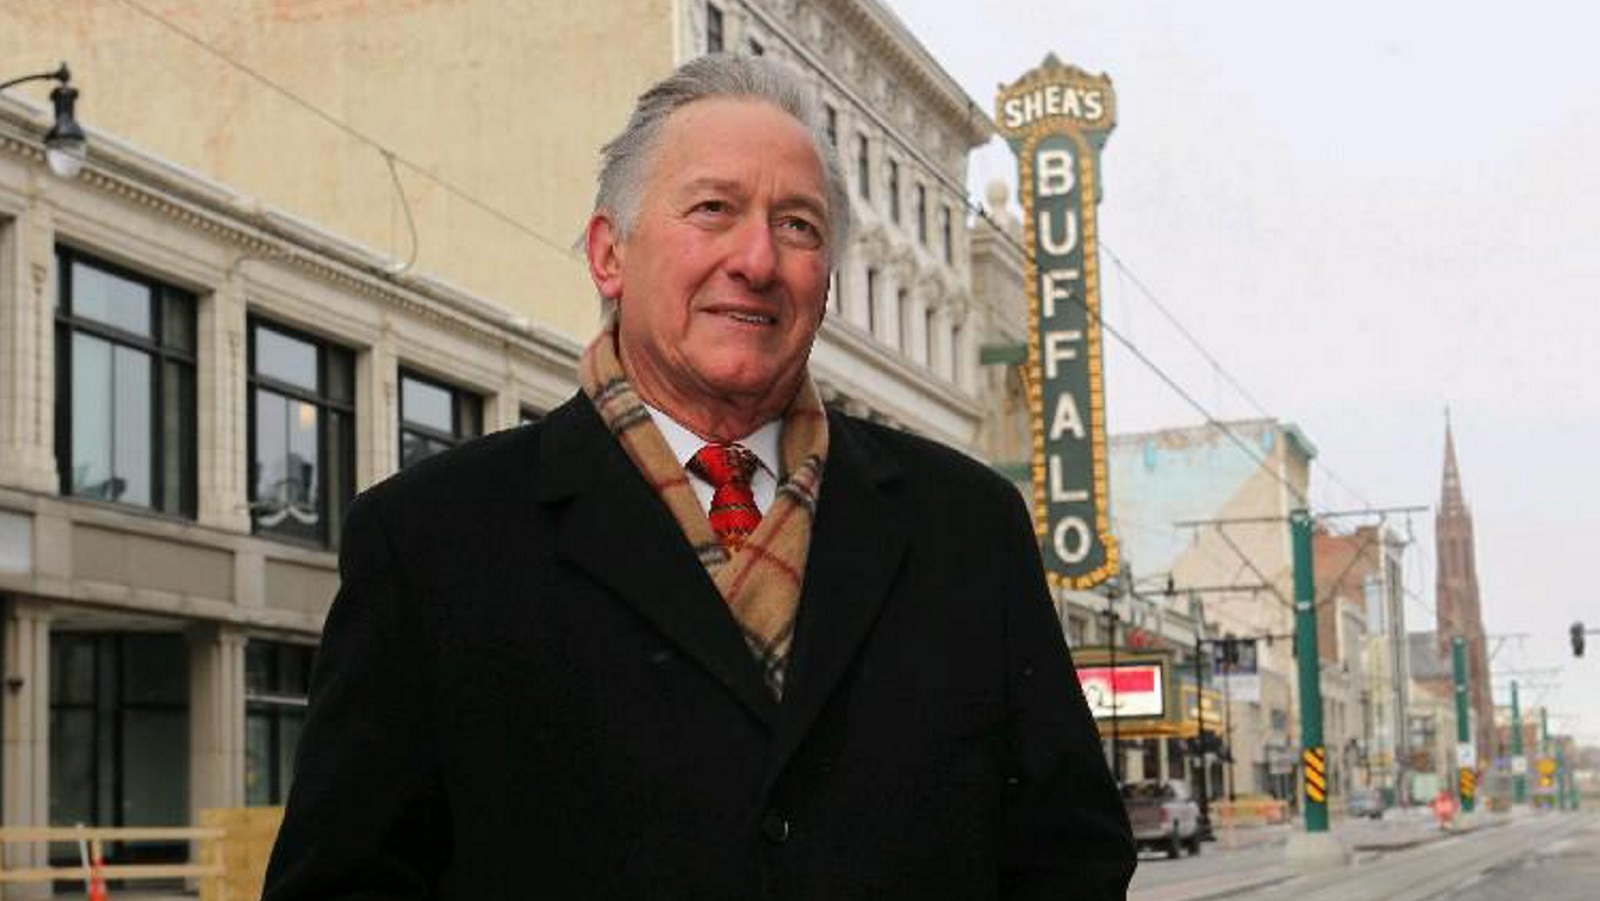 Anthony Conte left a legacy at Shea's Performing Arts Center.